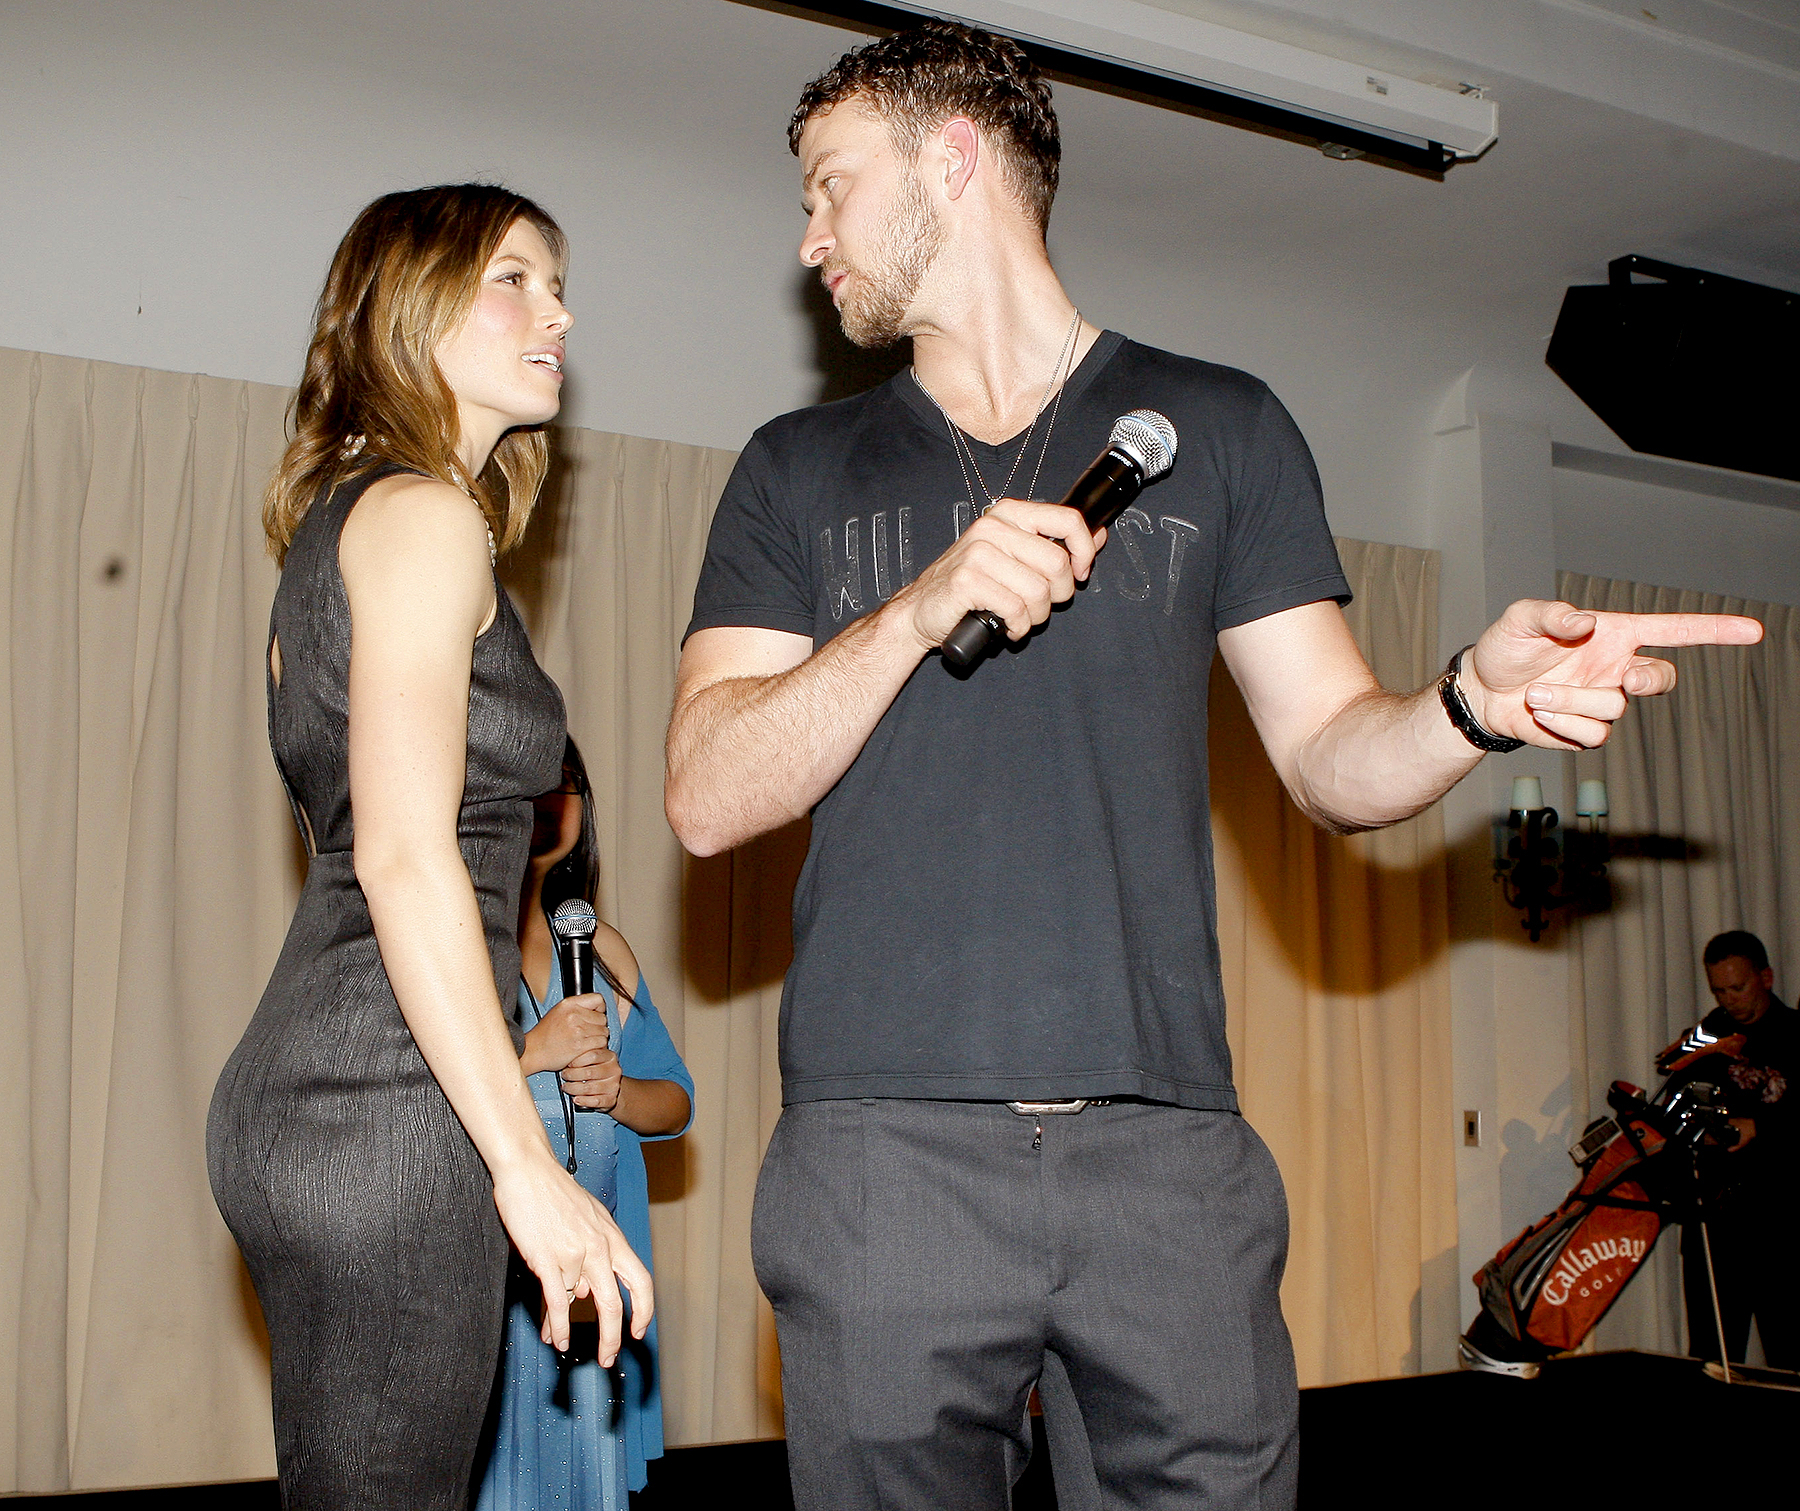 Jessica Biel and Justin Timberlake during Jessica Biel & Make The Difference Network Partner with Auction Cause to Benefit Childrens Hospital Los Angeles at Social Hollywood in Hollywood, CA on December 10, 2008.